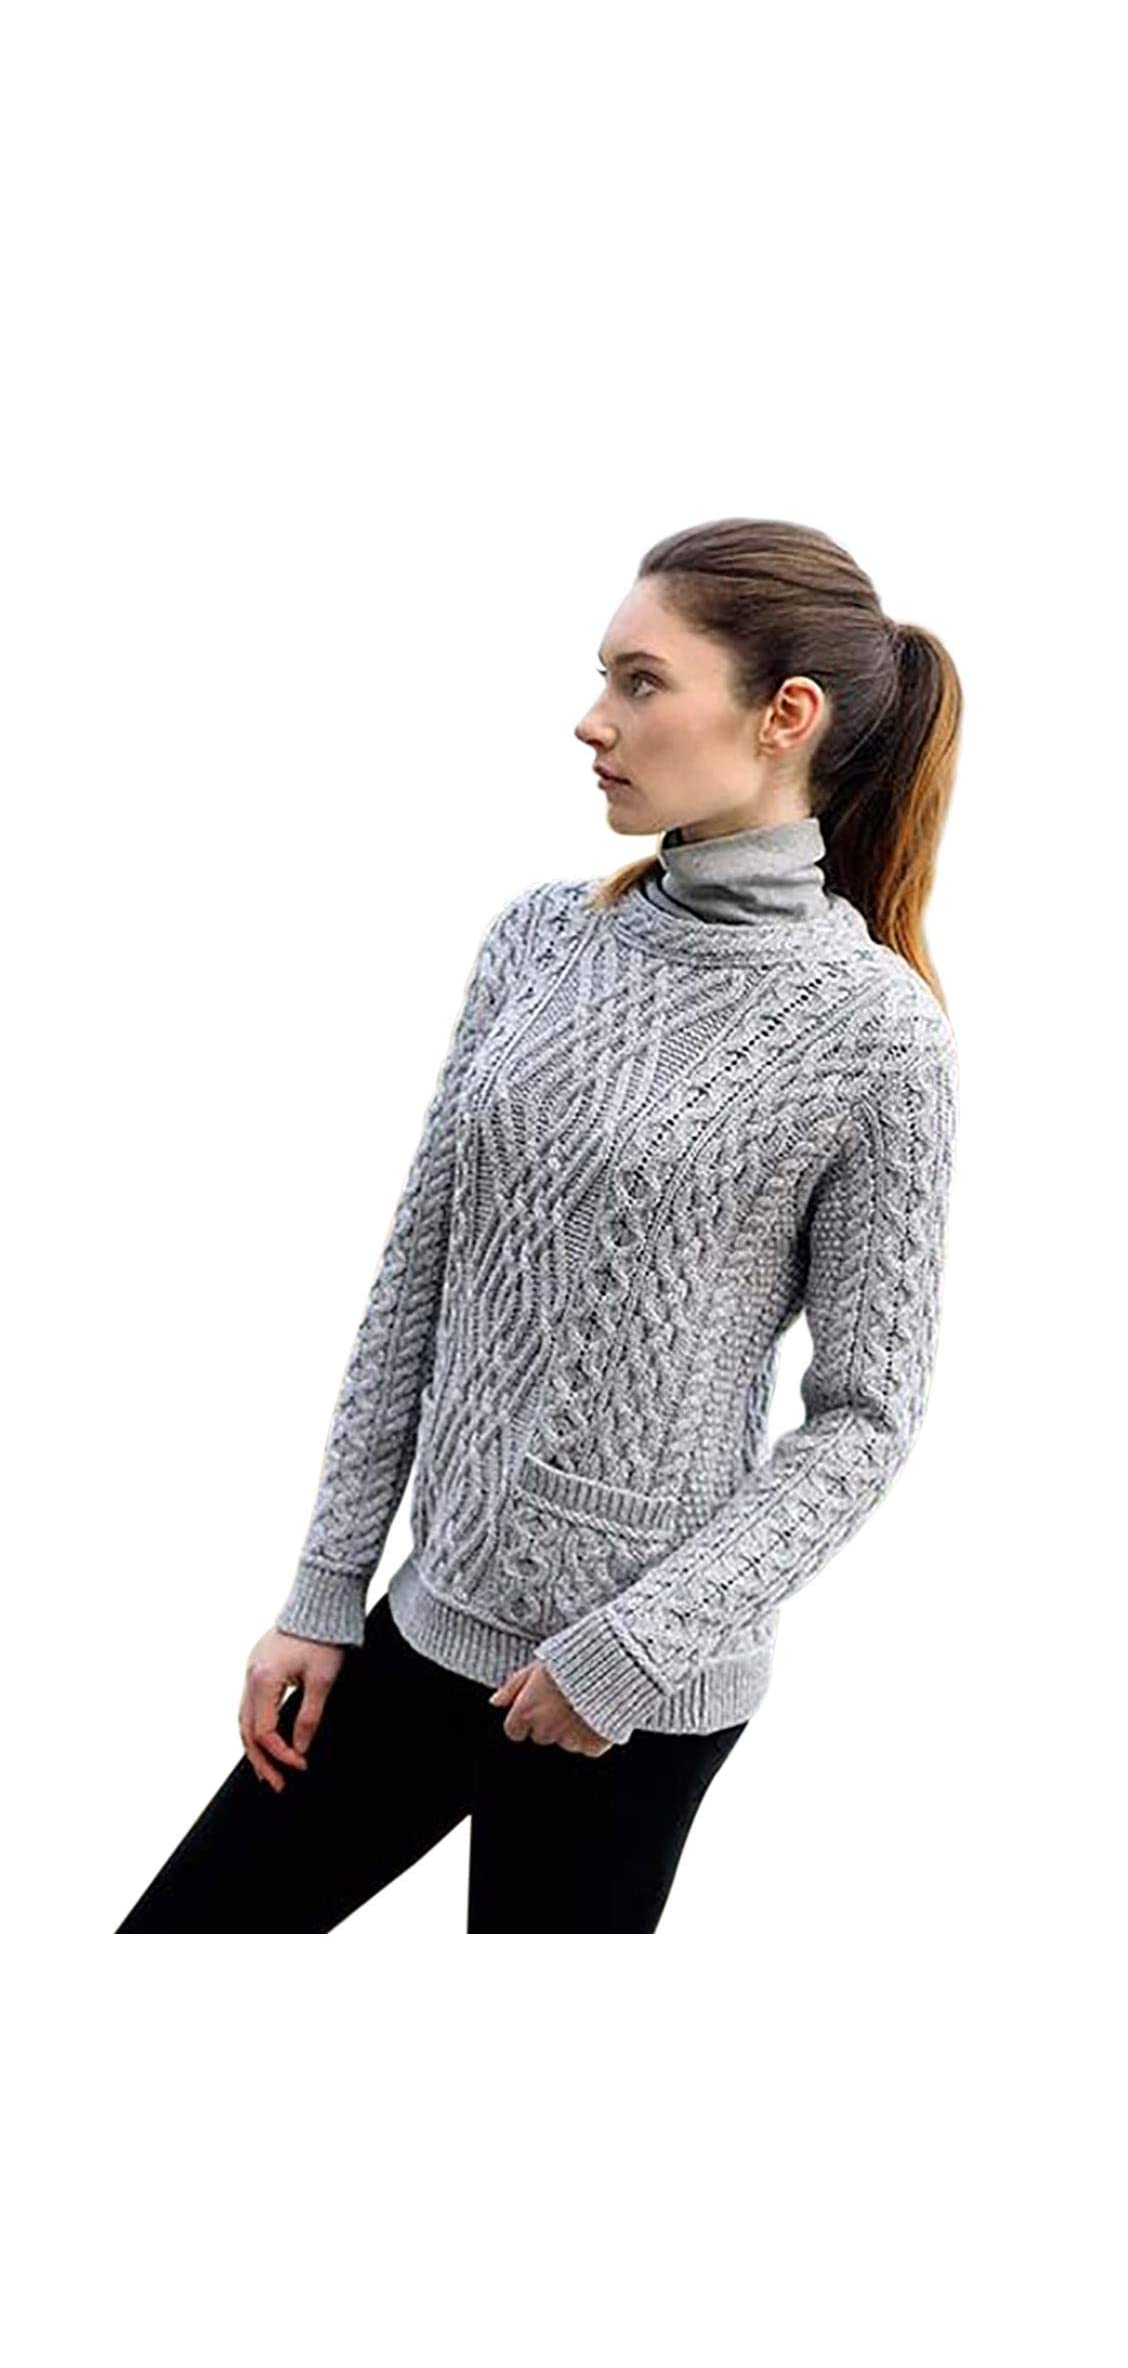 Ladies  Irish Merino Wool Cable Sweater With Pockets By West